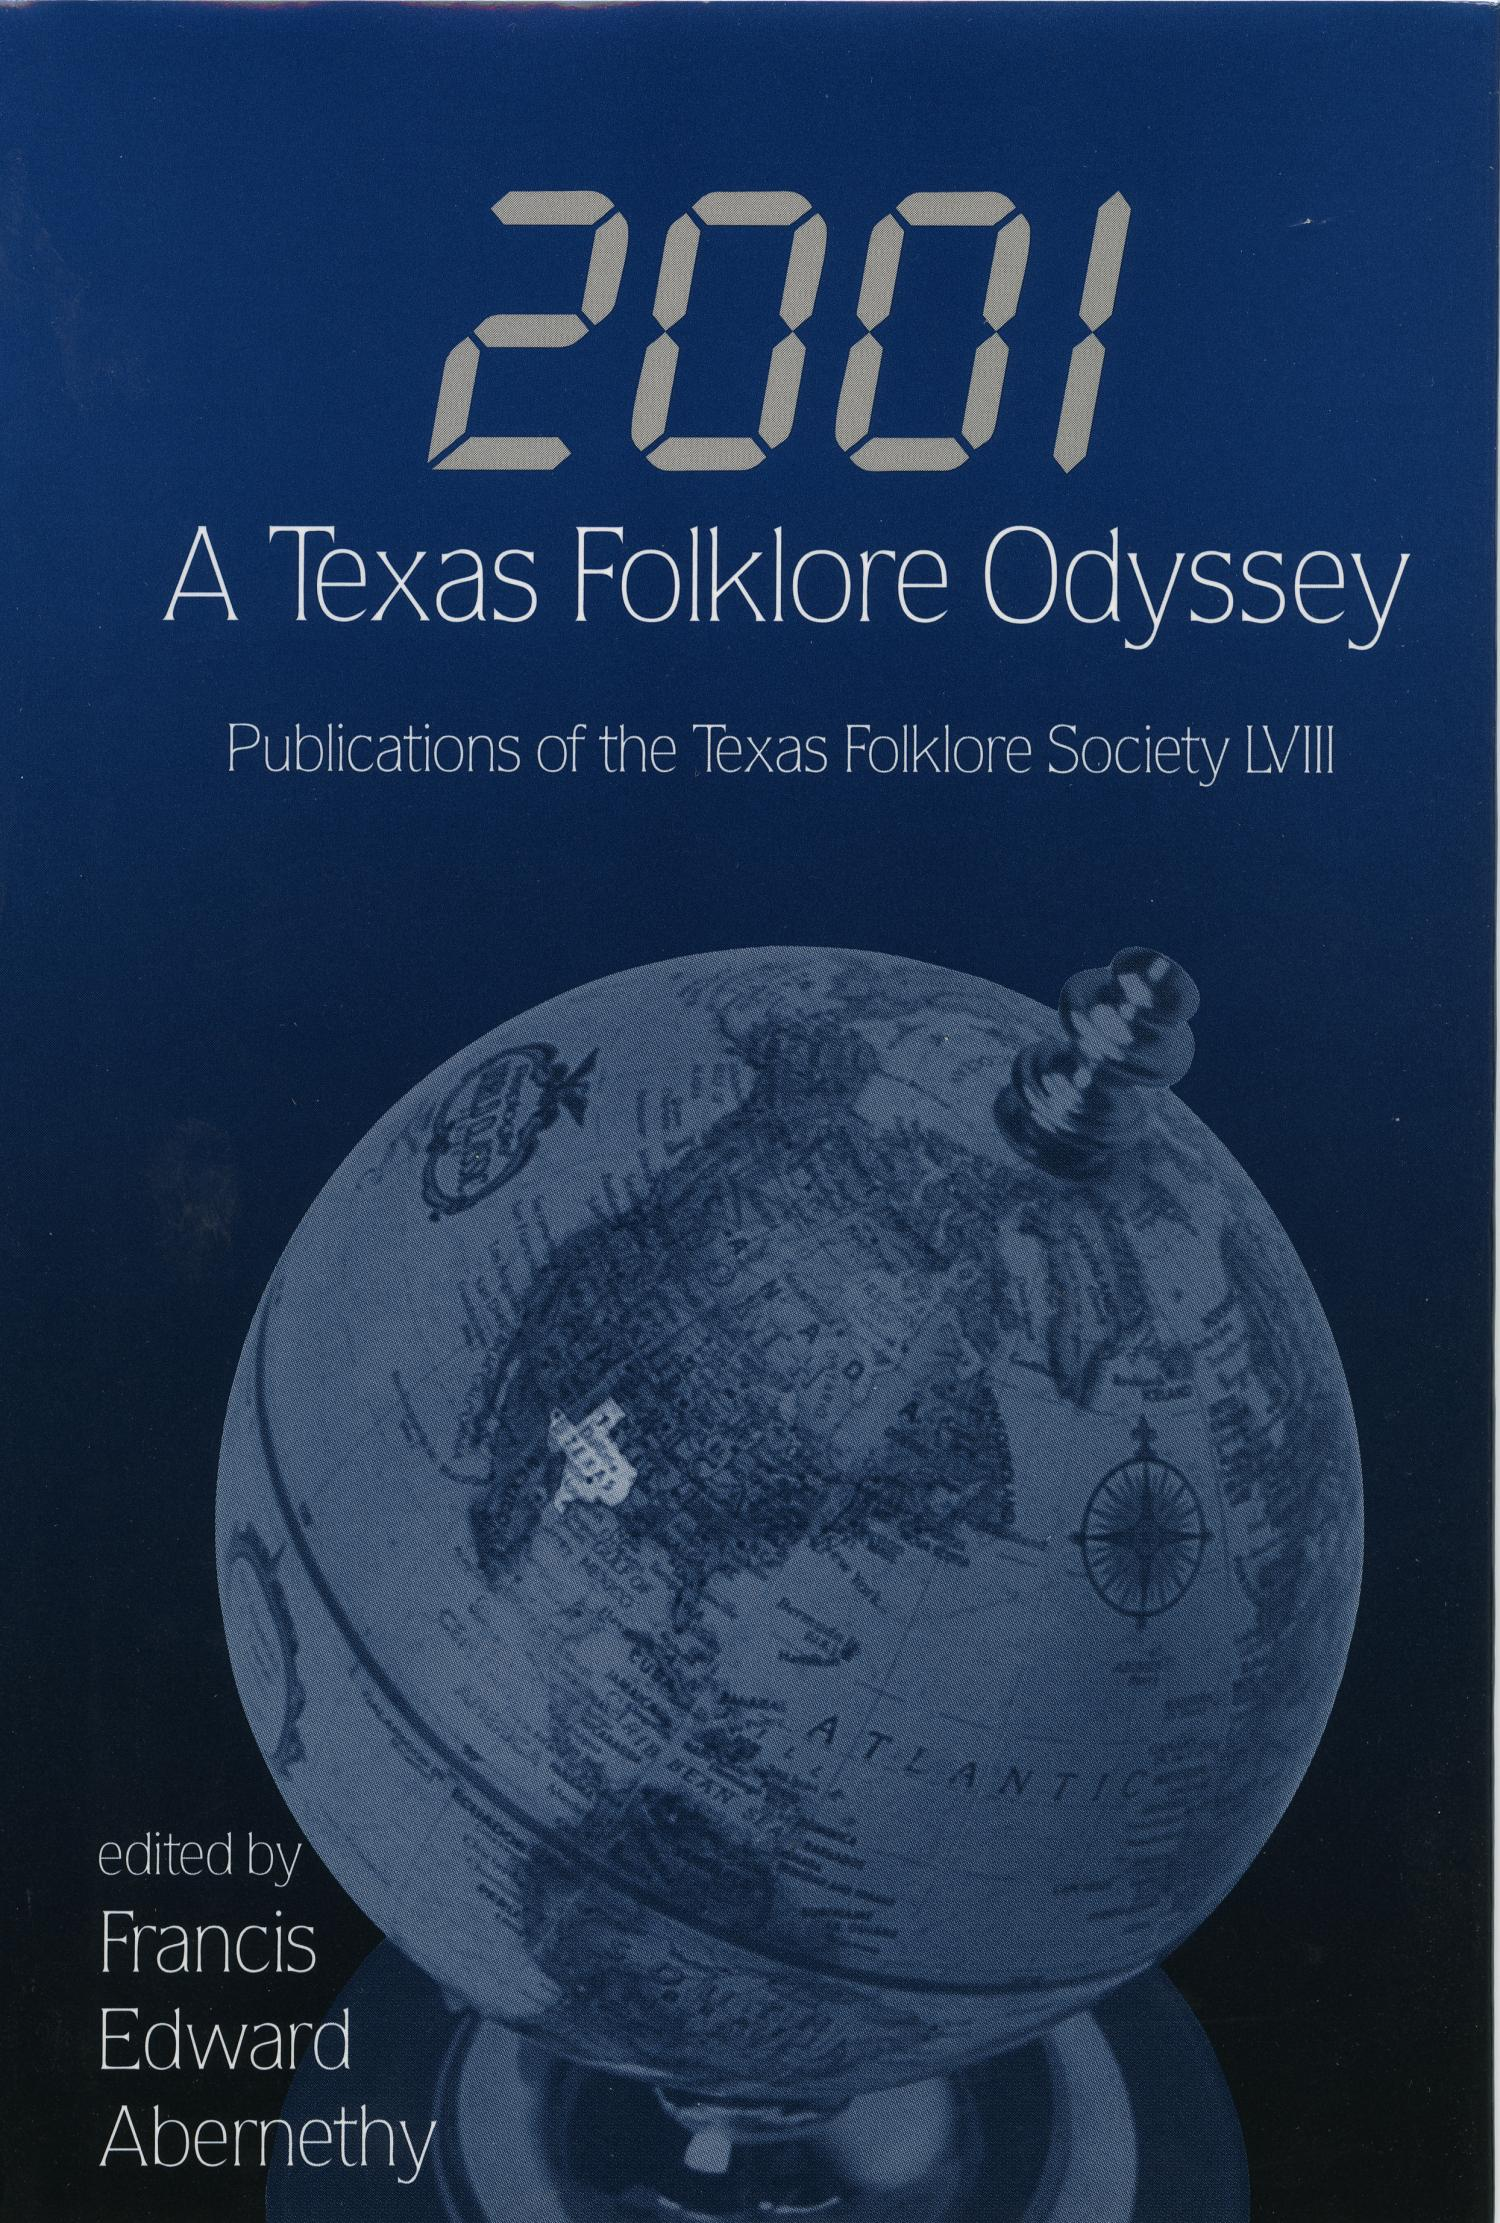 2001: A Texas Folklore Odyssey                                                                                                      Front Cover